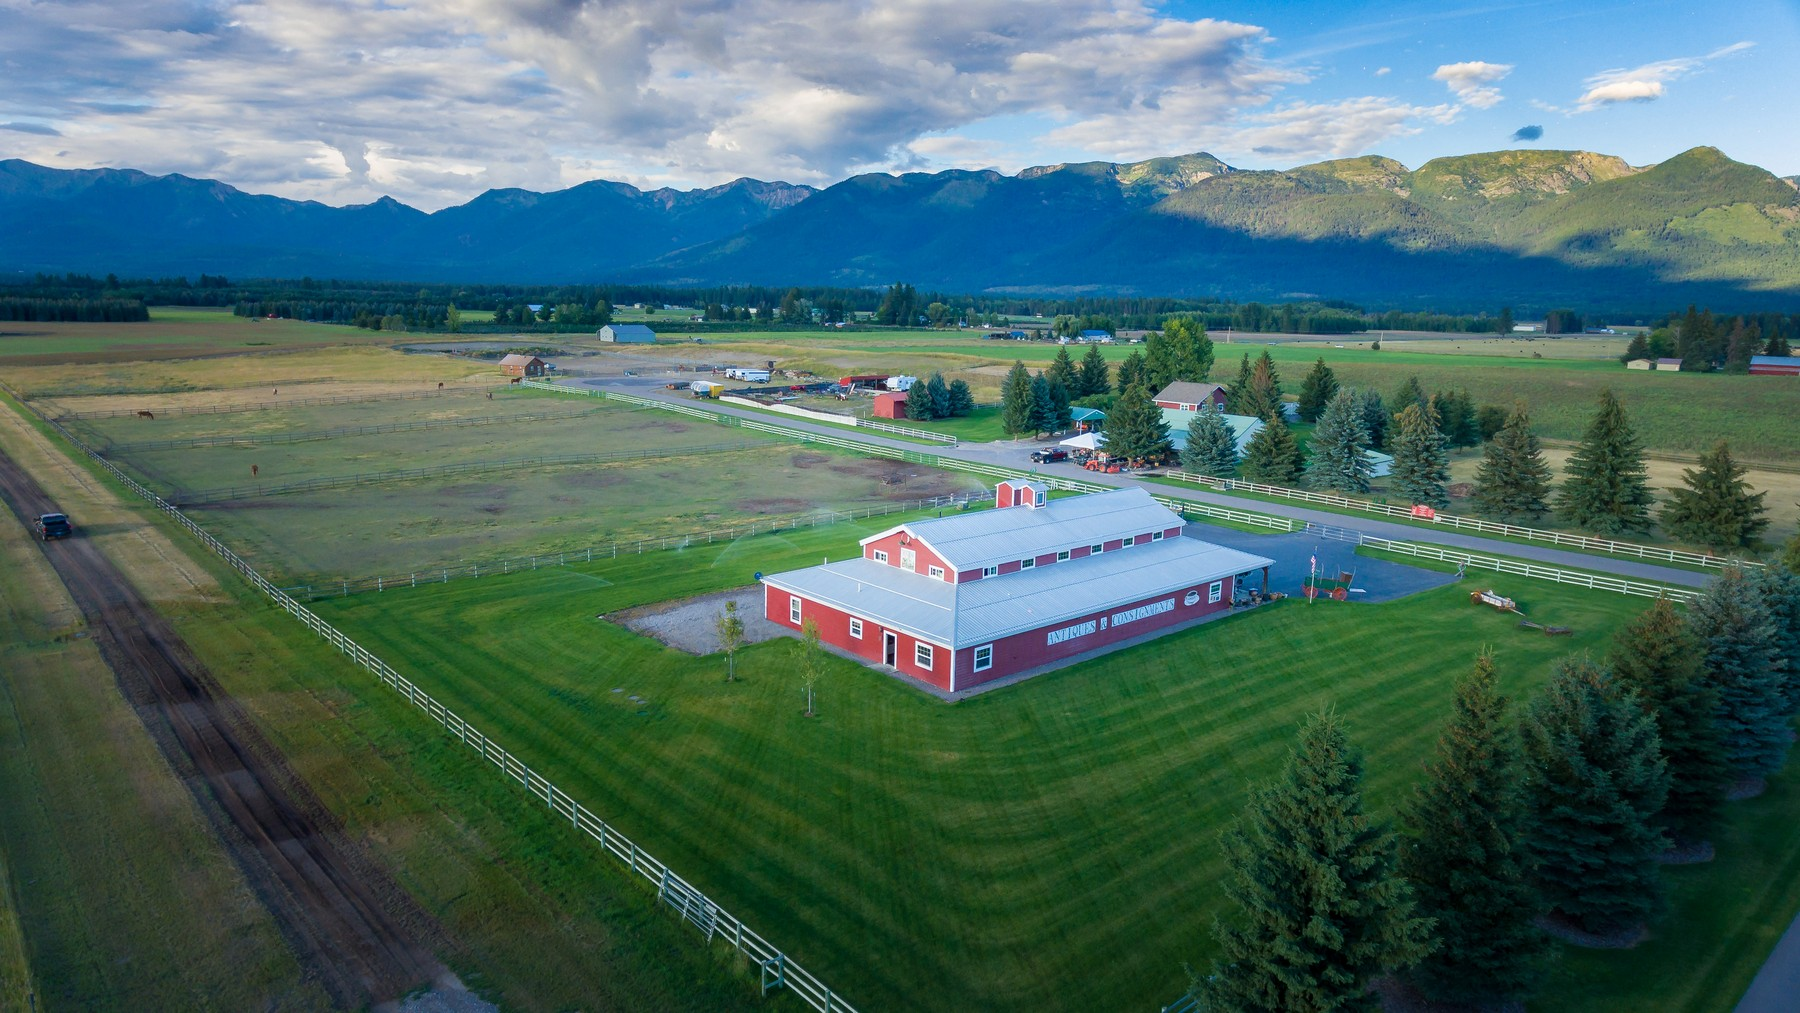 Land for Sale at 150 Hill Road, Bigfork, MT 59911 150 Hill Rd Bigfork, Montana 59911 United States